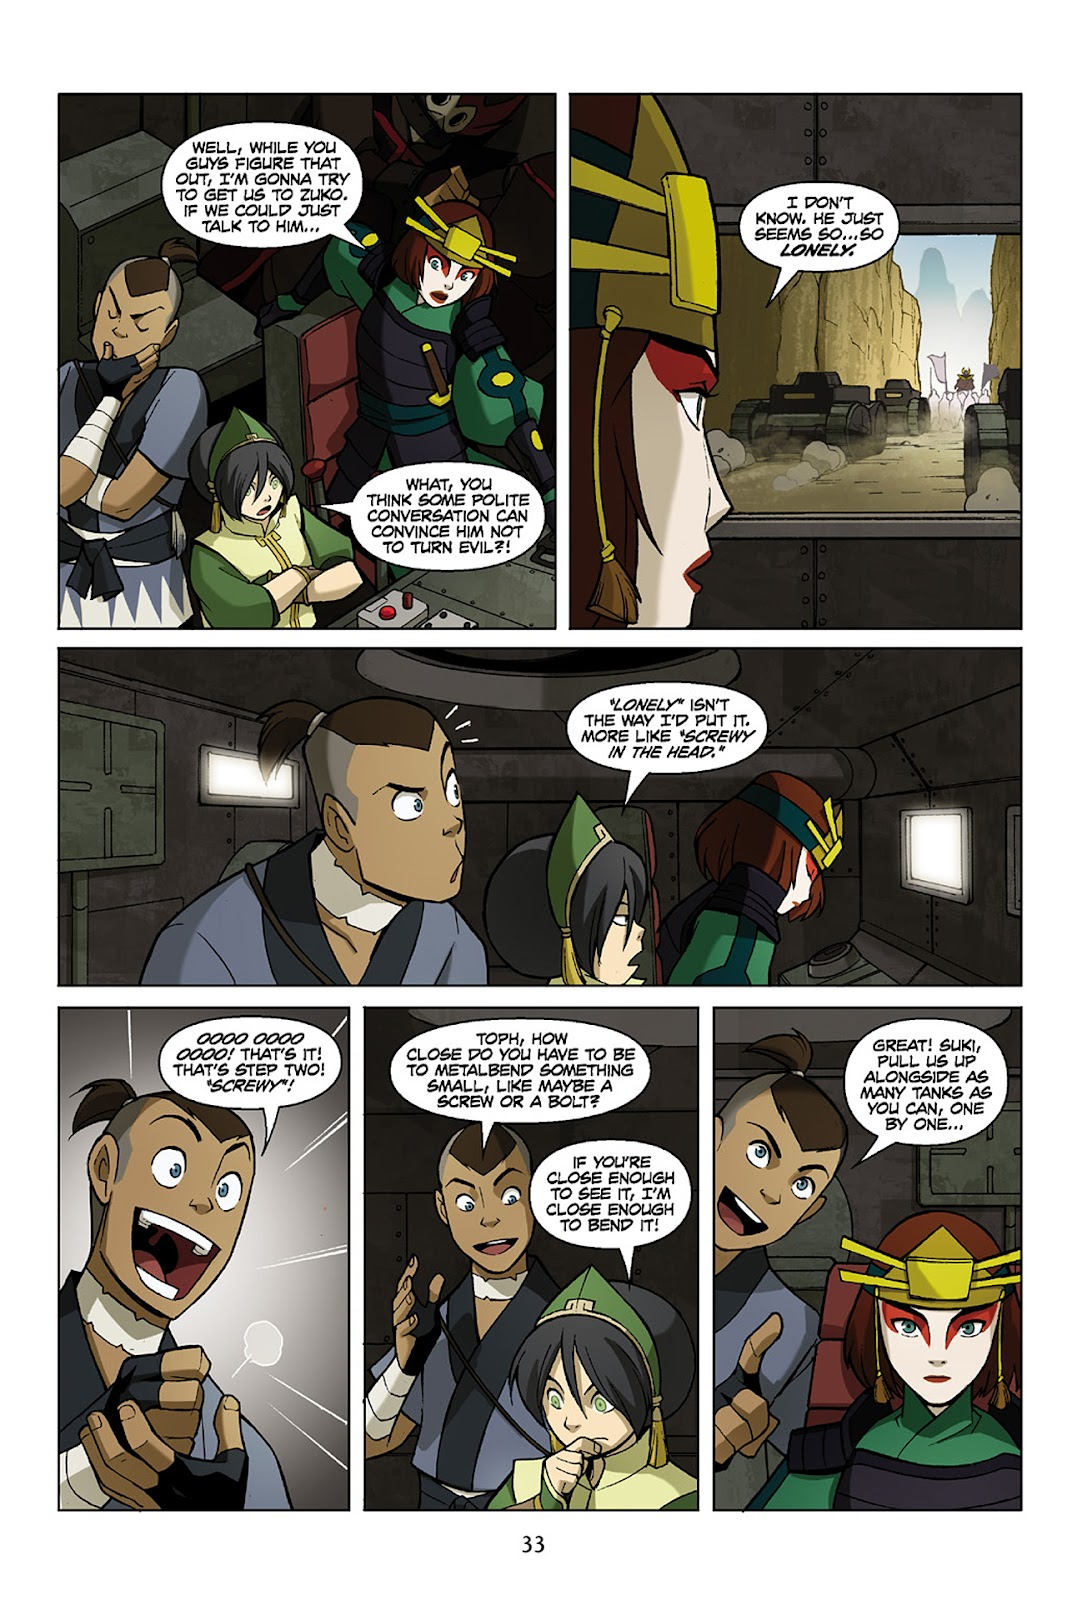 Comic Nickelodeon Avatar: The Last Airbender - The Promise issue 3